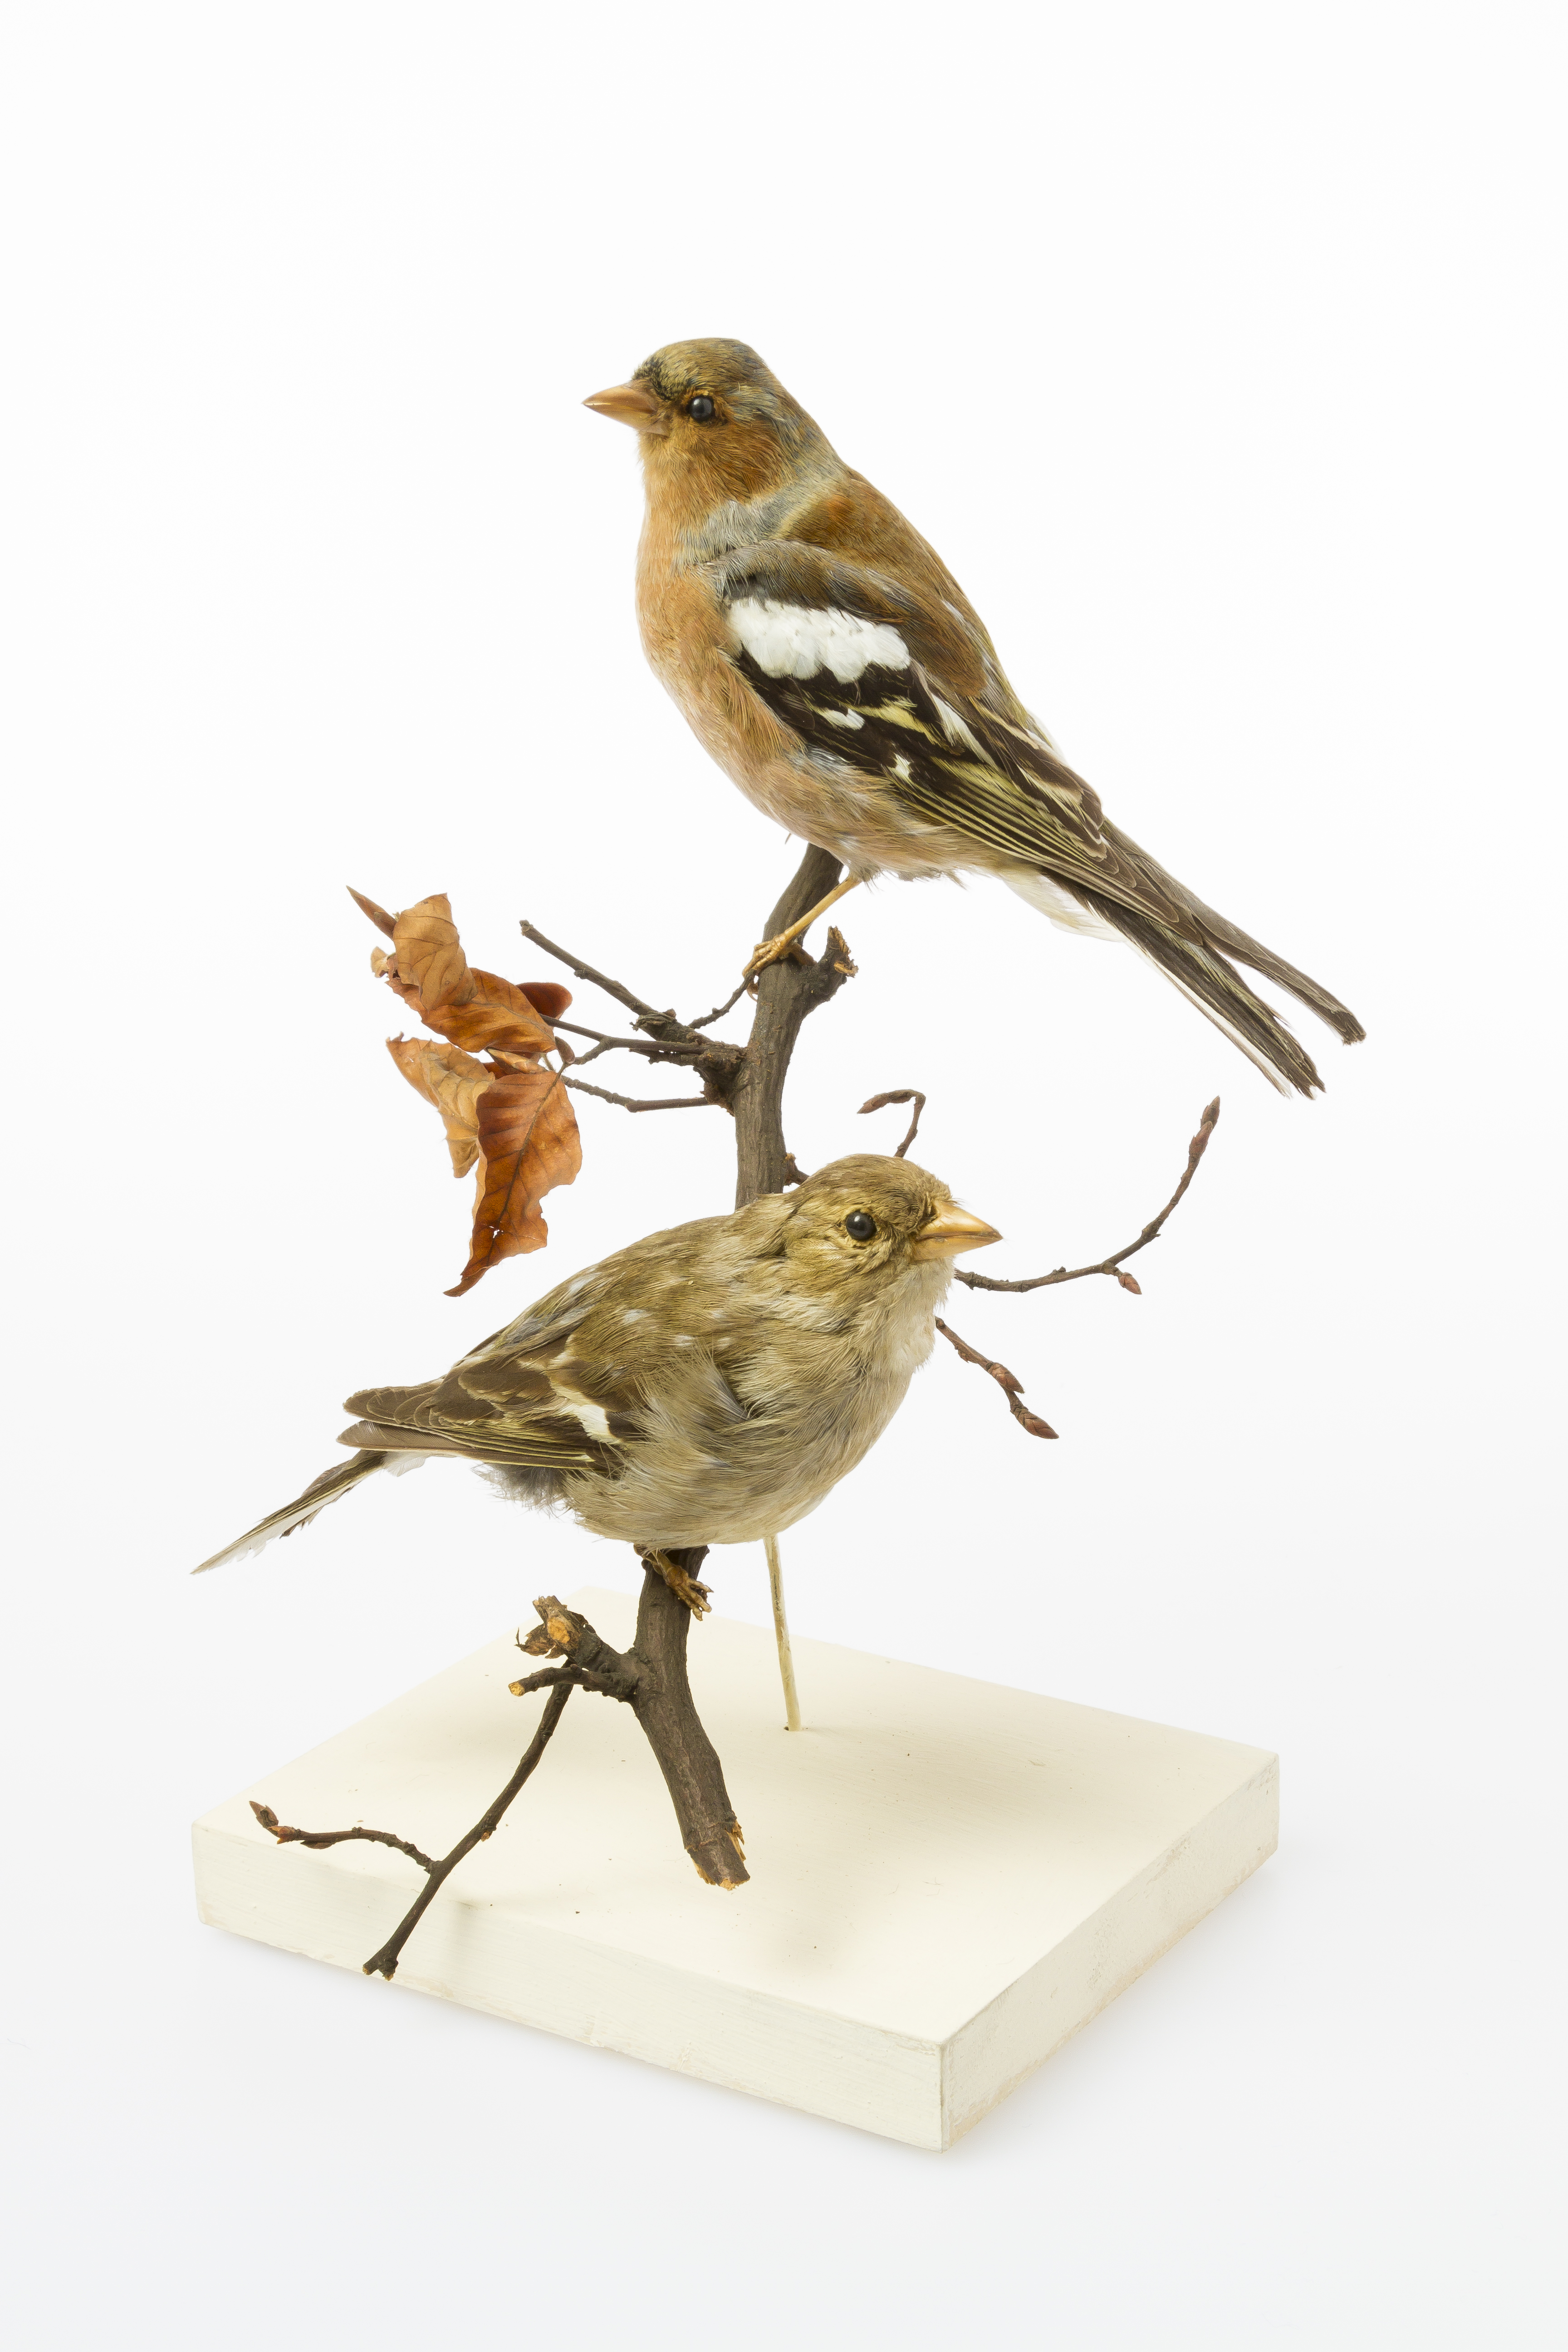 Photograph of chaffinch specimens at the Museum of Zoology